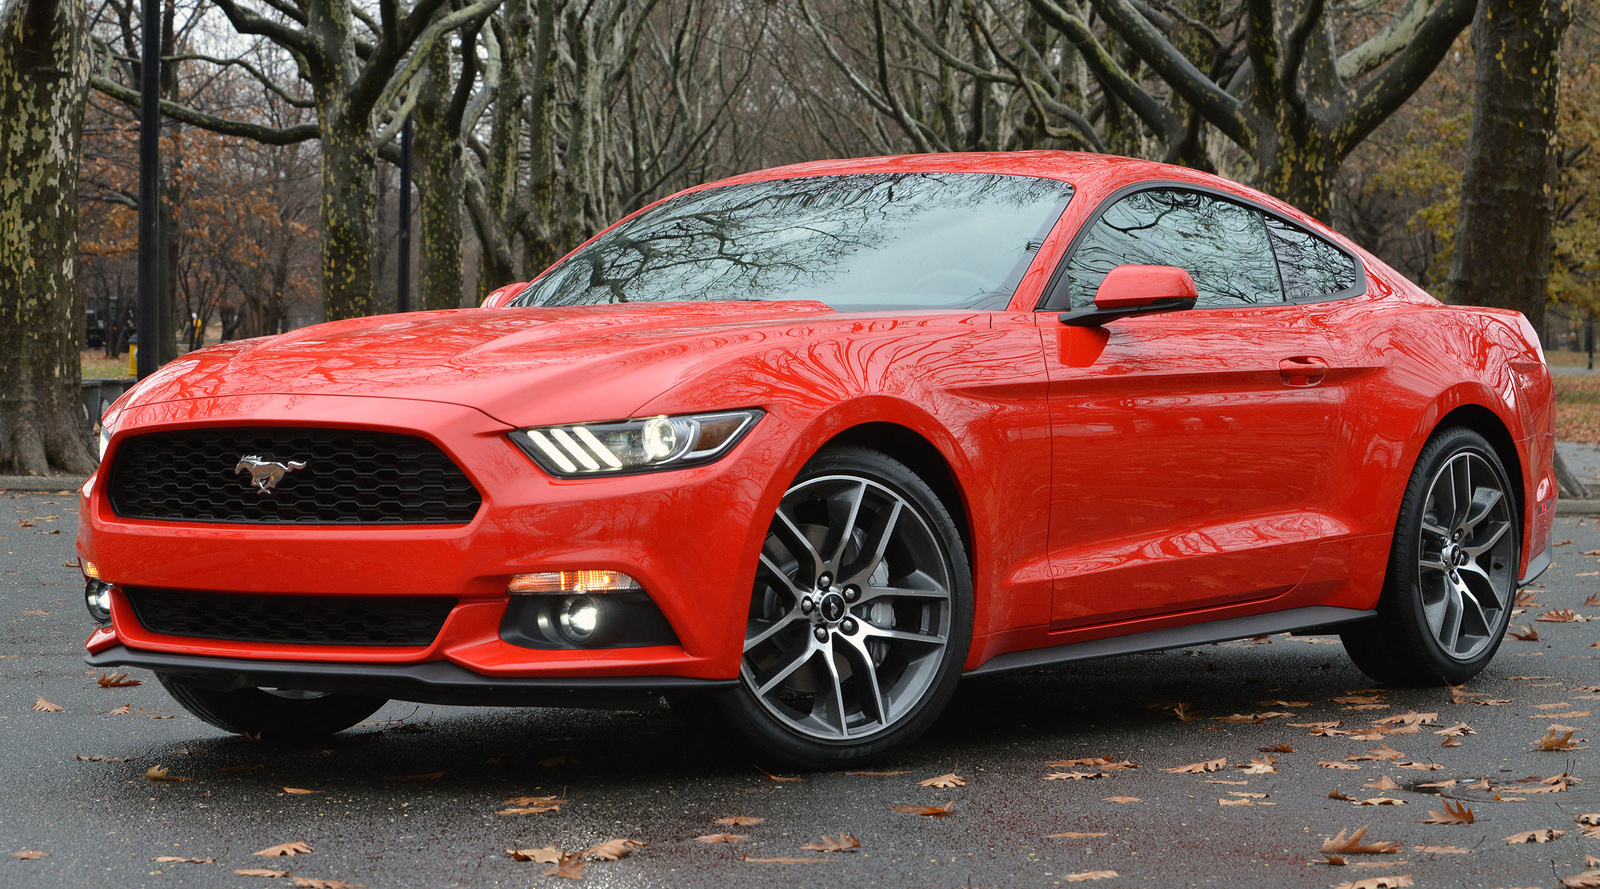 New 2015 2016 Ford Mustang For Sale Cargurus